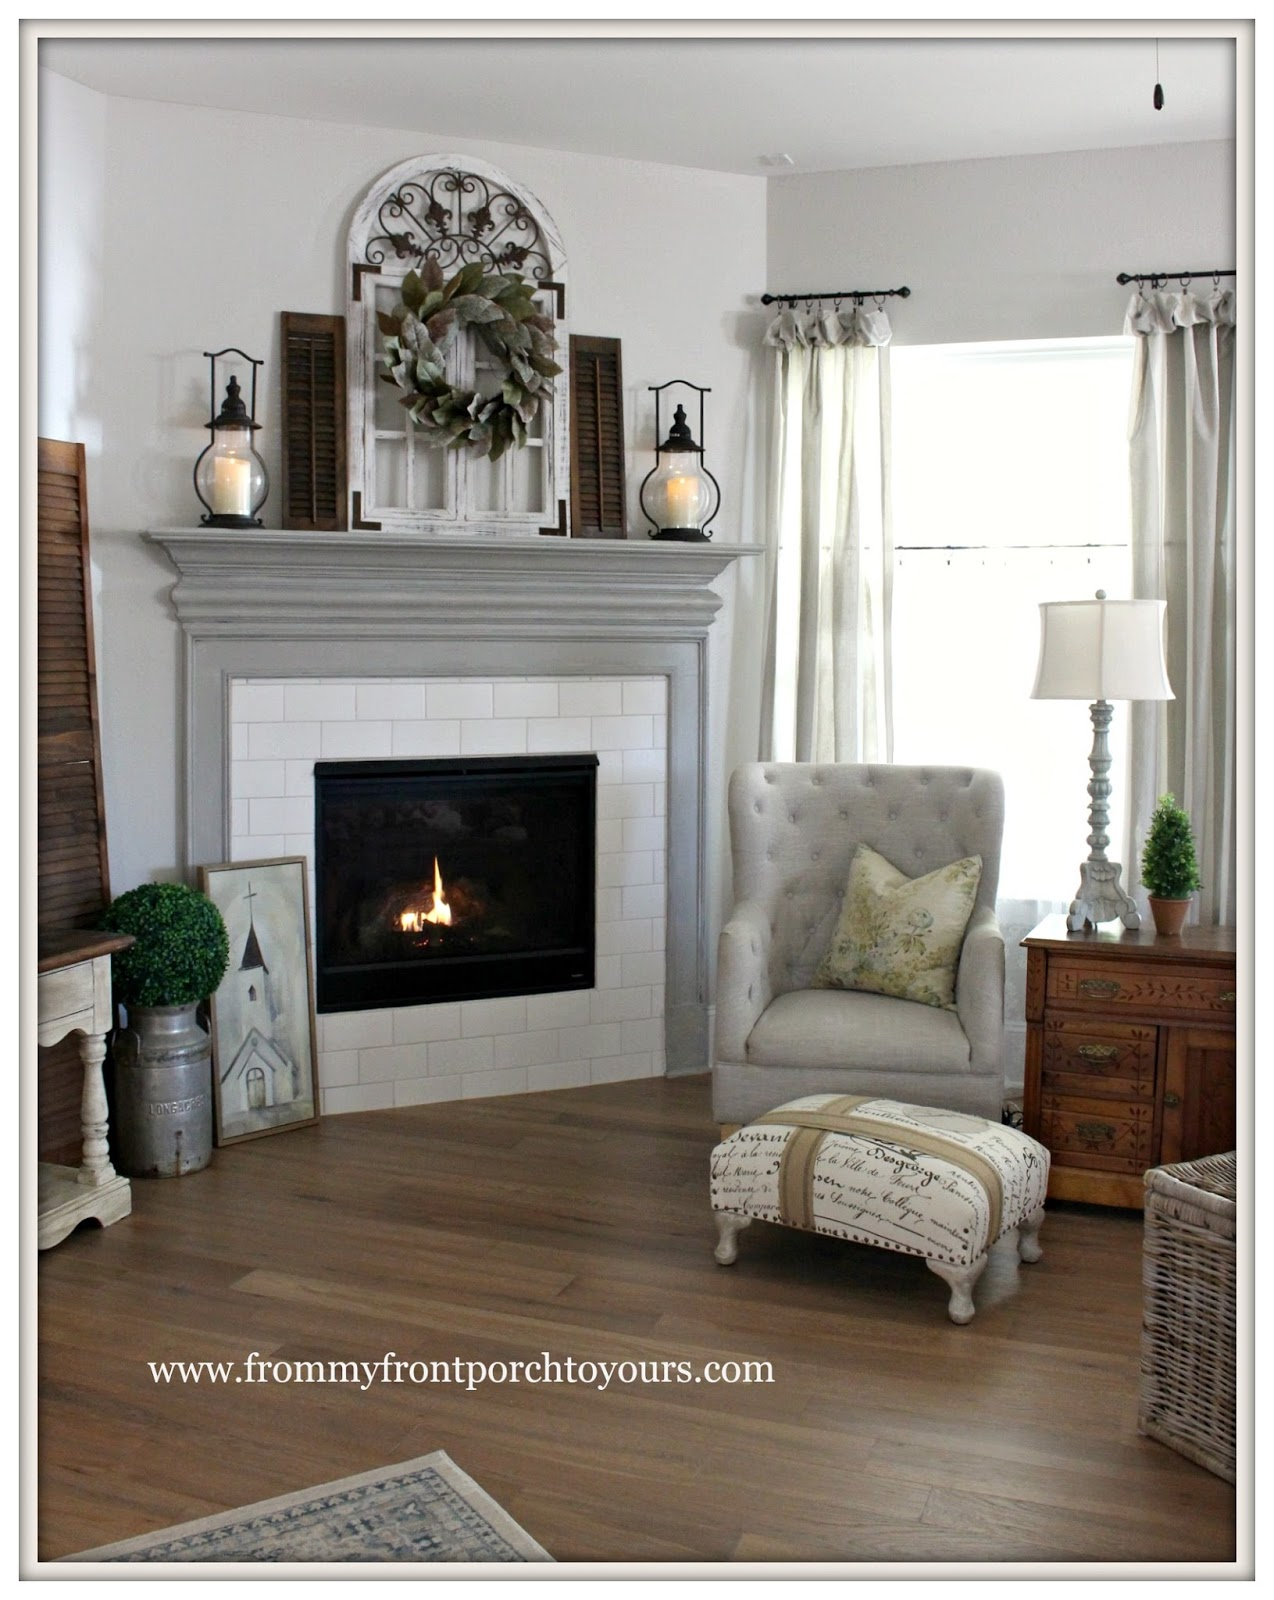 swingncocoa to make fireplace deliciously done mantel how makeover a img part